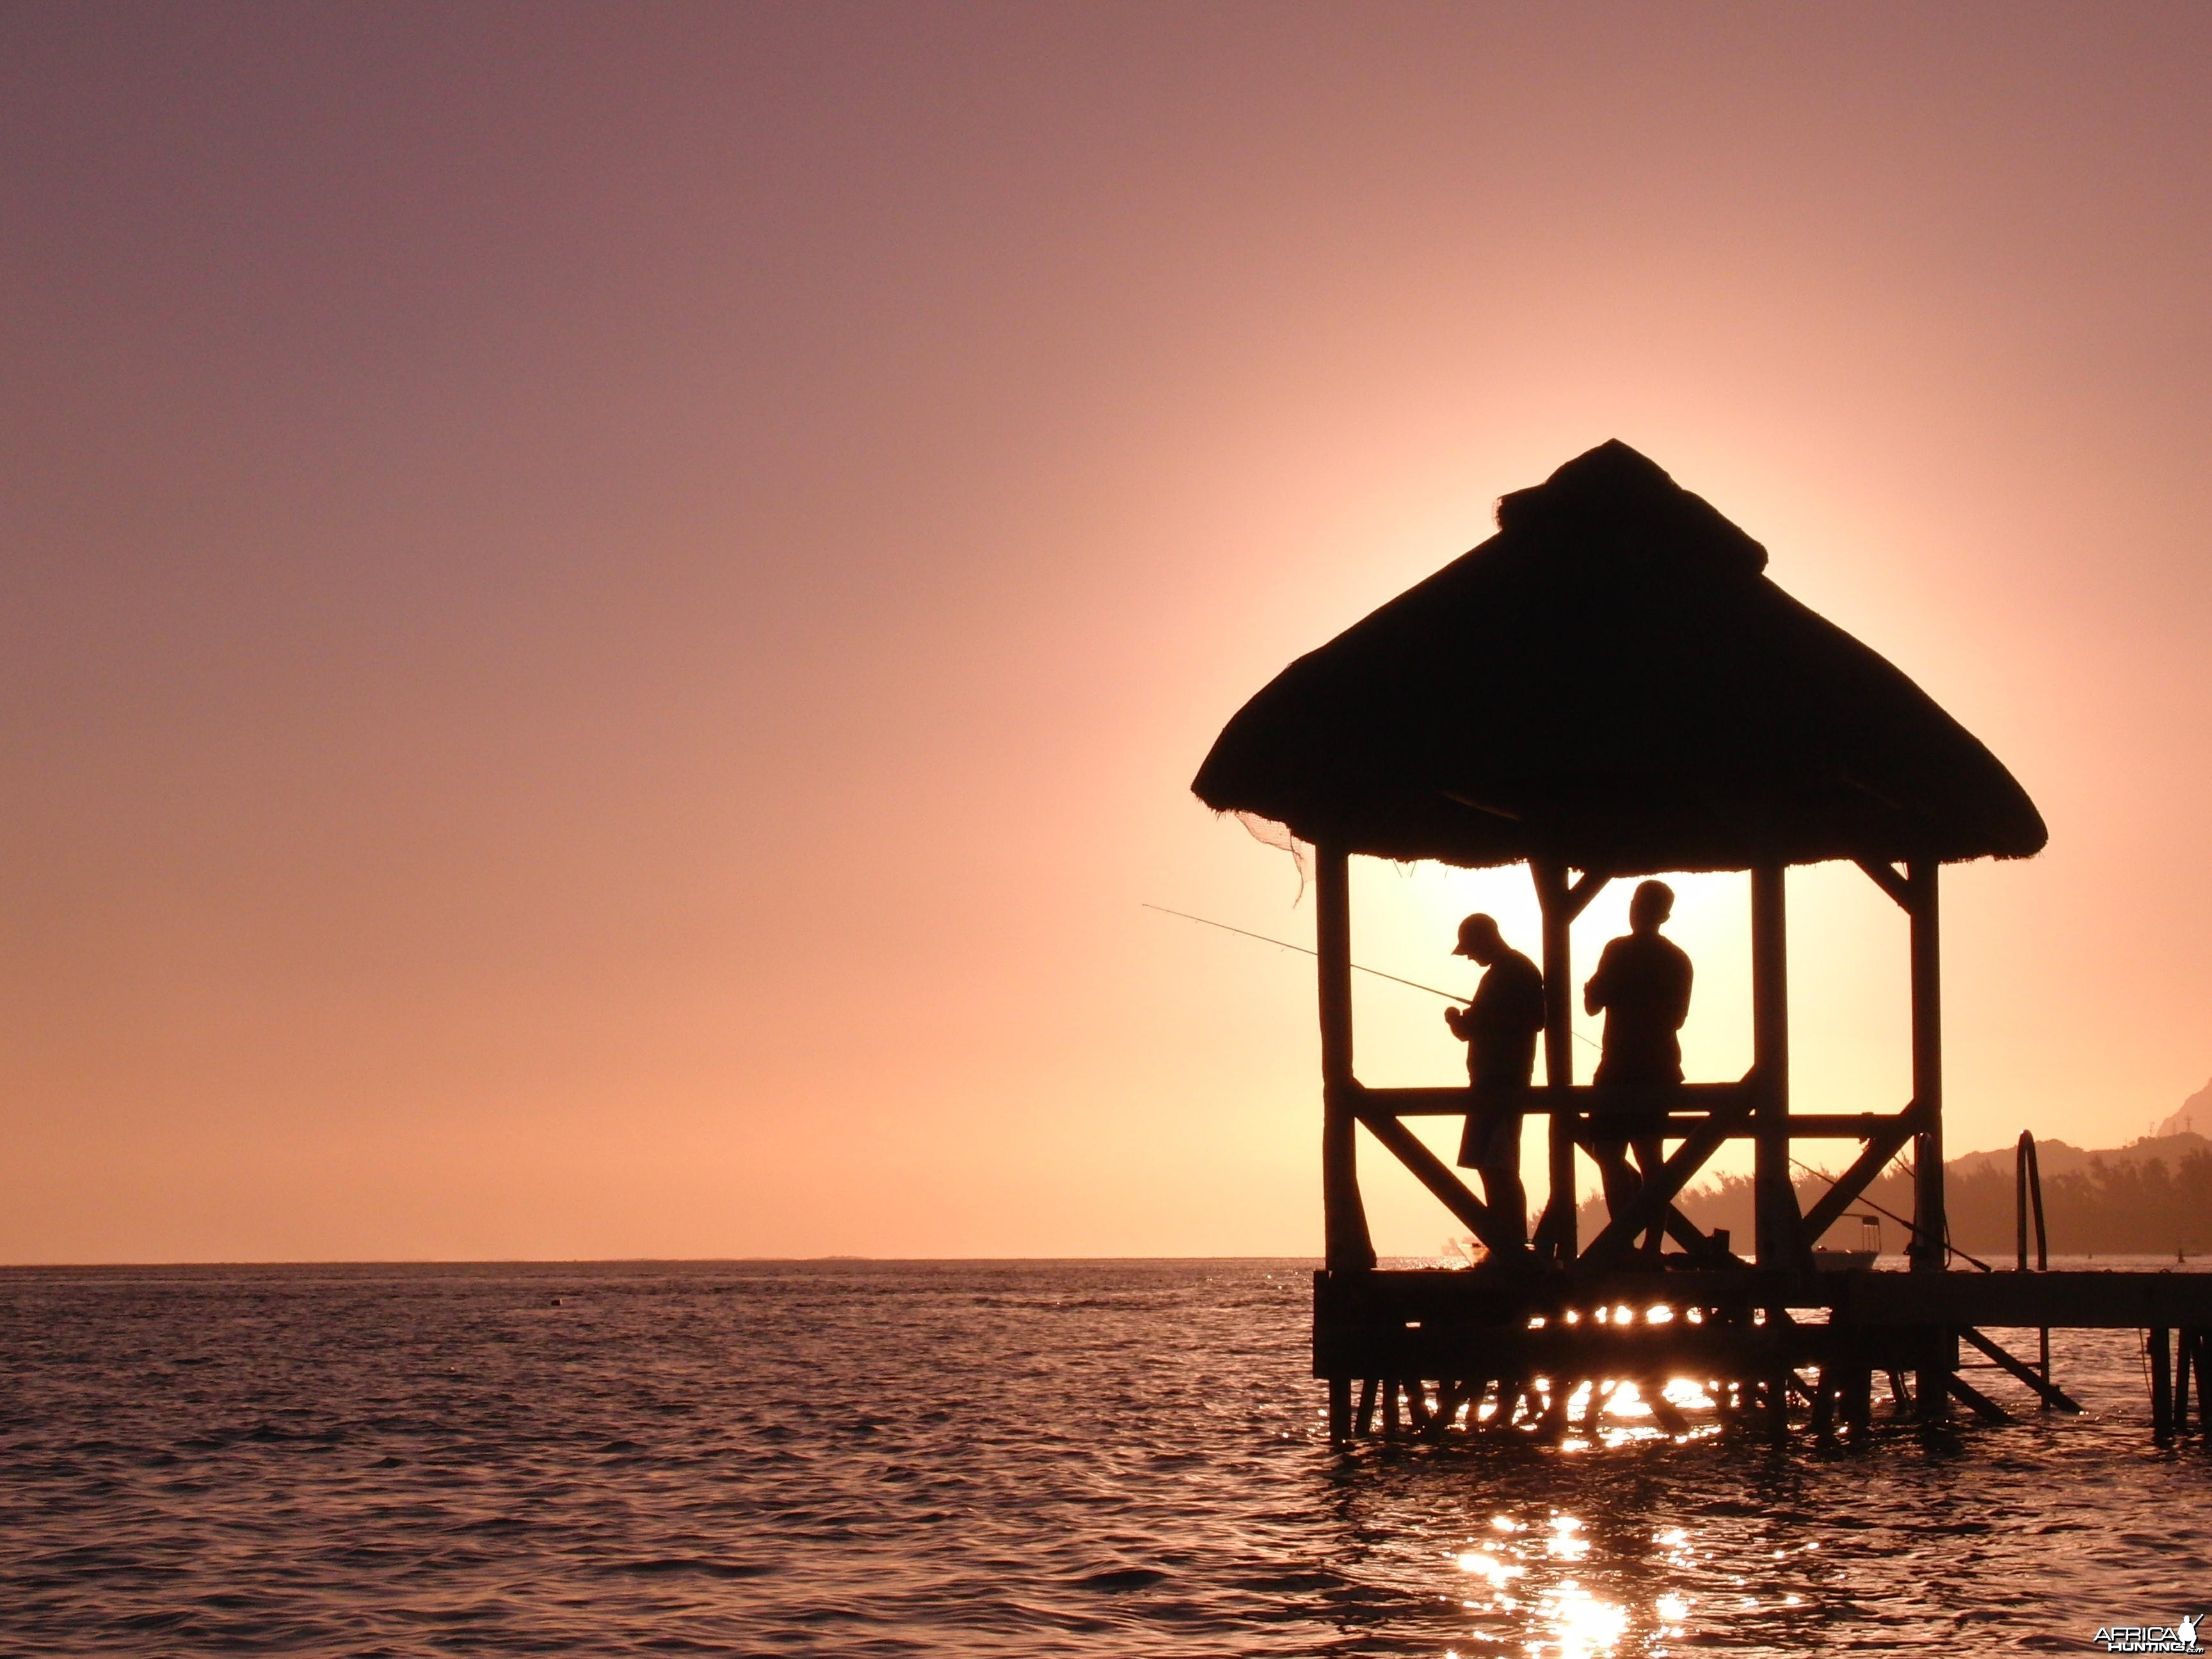 Idian Ocean sunset at Moevenpick Resort in Mauritius